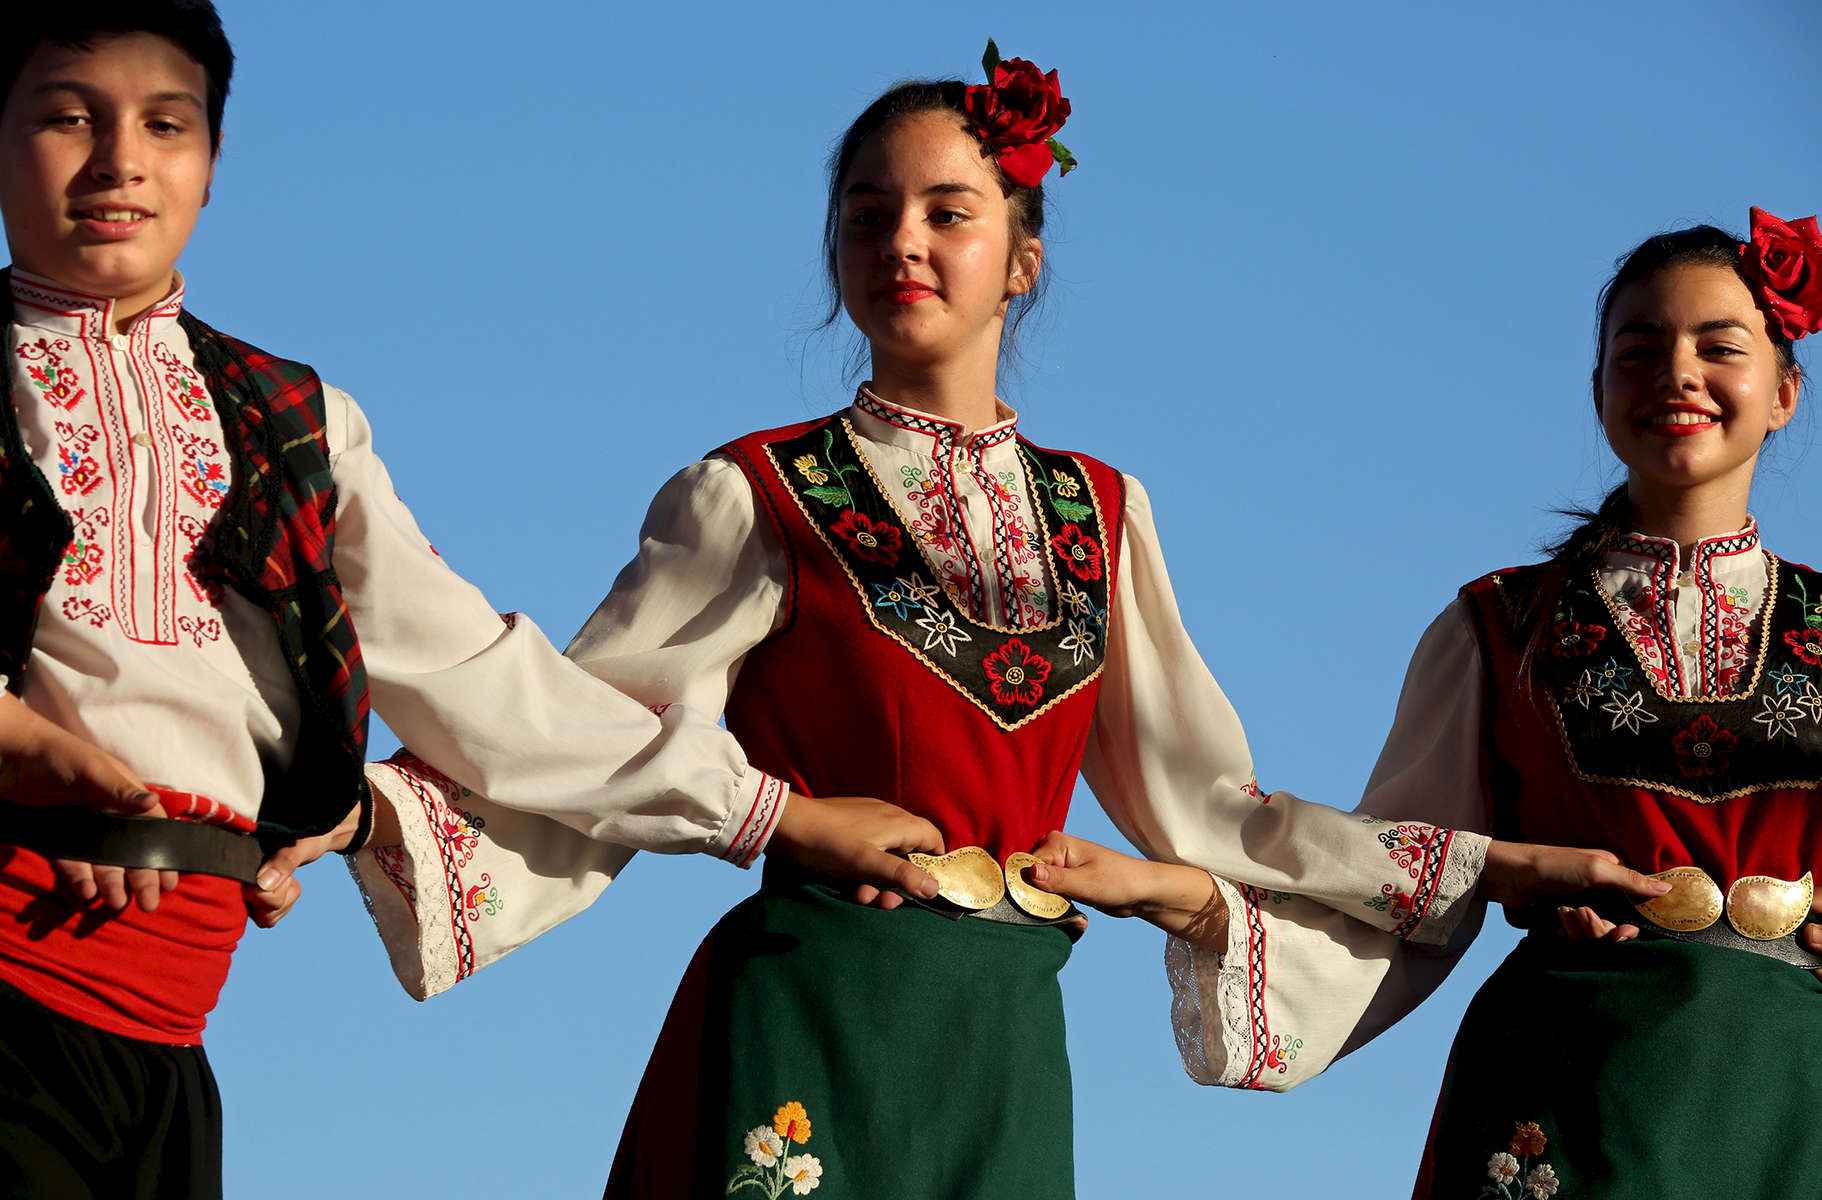 Members of the dance ensemble Zhar, from Kazanlak, Bulgaria, dance on stage during an International Folklore Festival on June 01, 2018, at the Rose Festival in Kazanlak, a town situated in the Rose Valley of Bulgaria. The festival celebrated 115 years in 2018.  Photo by: Yana Paskova for National Geographic Traveler